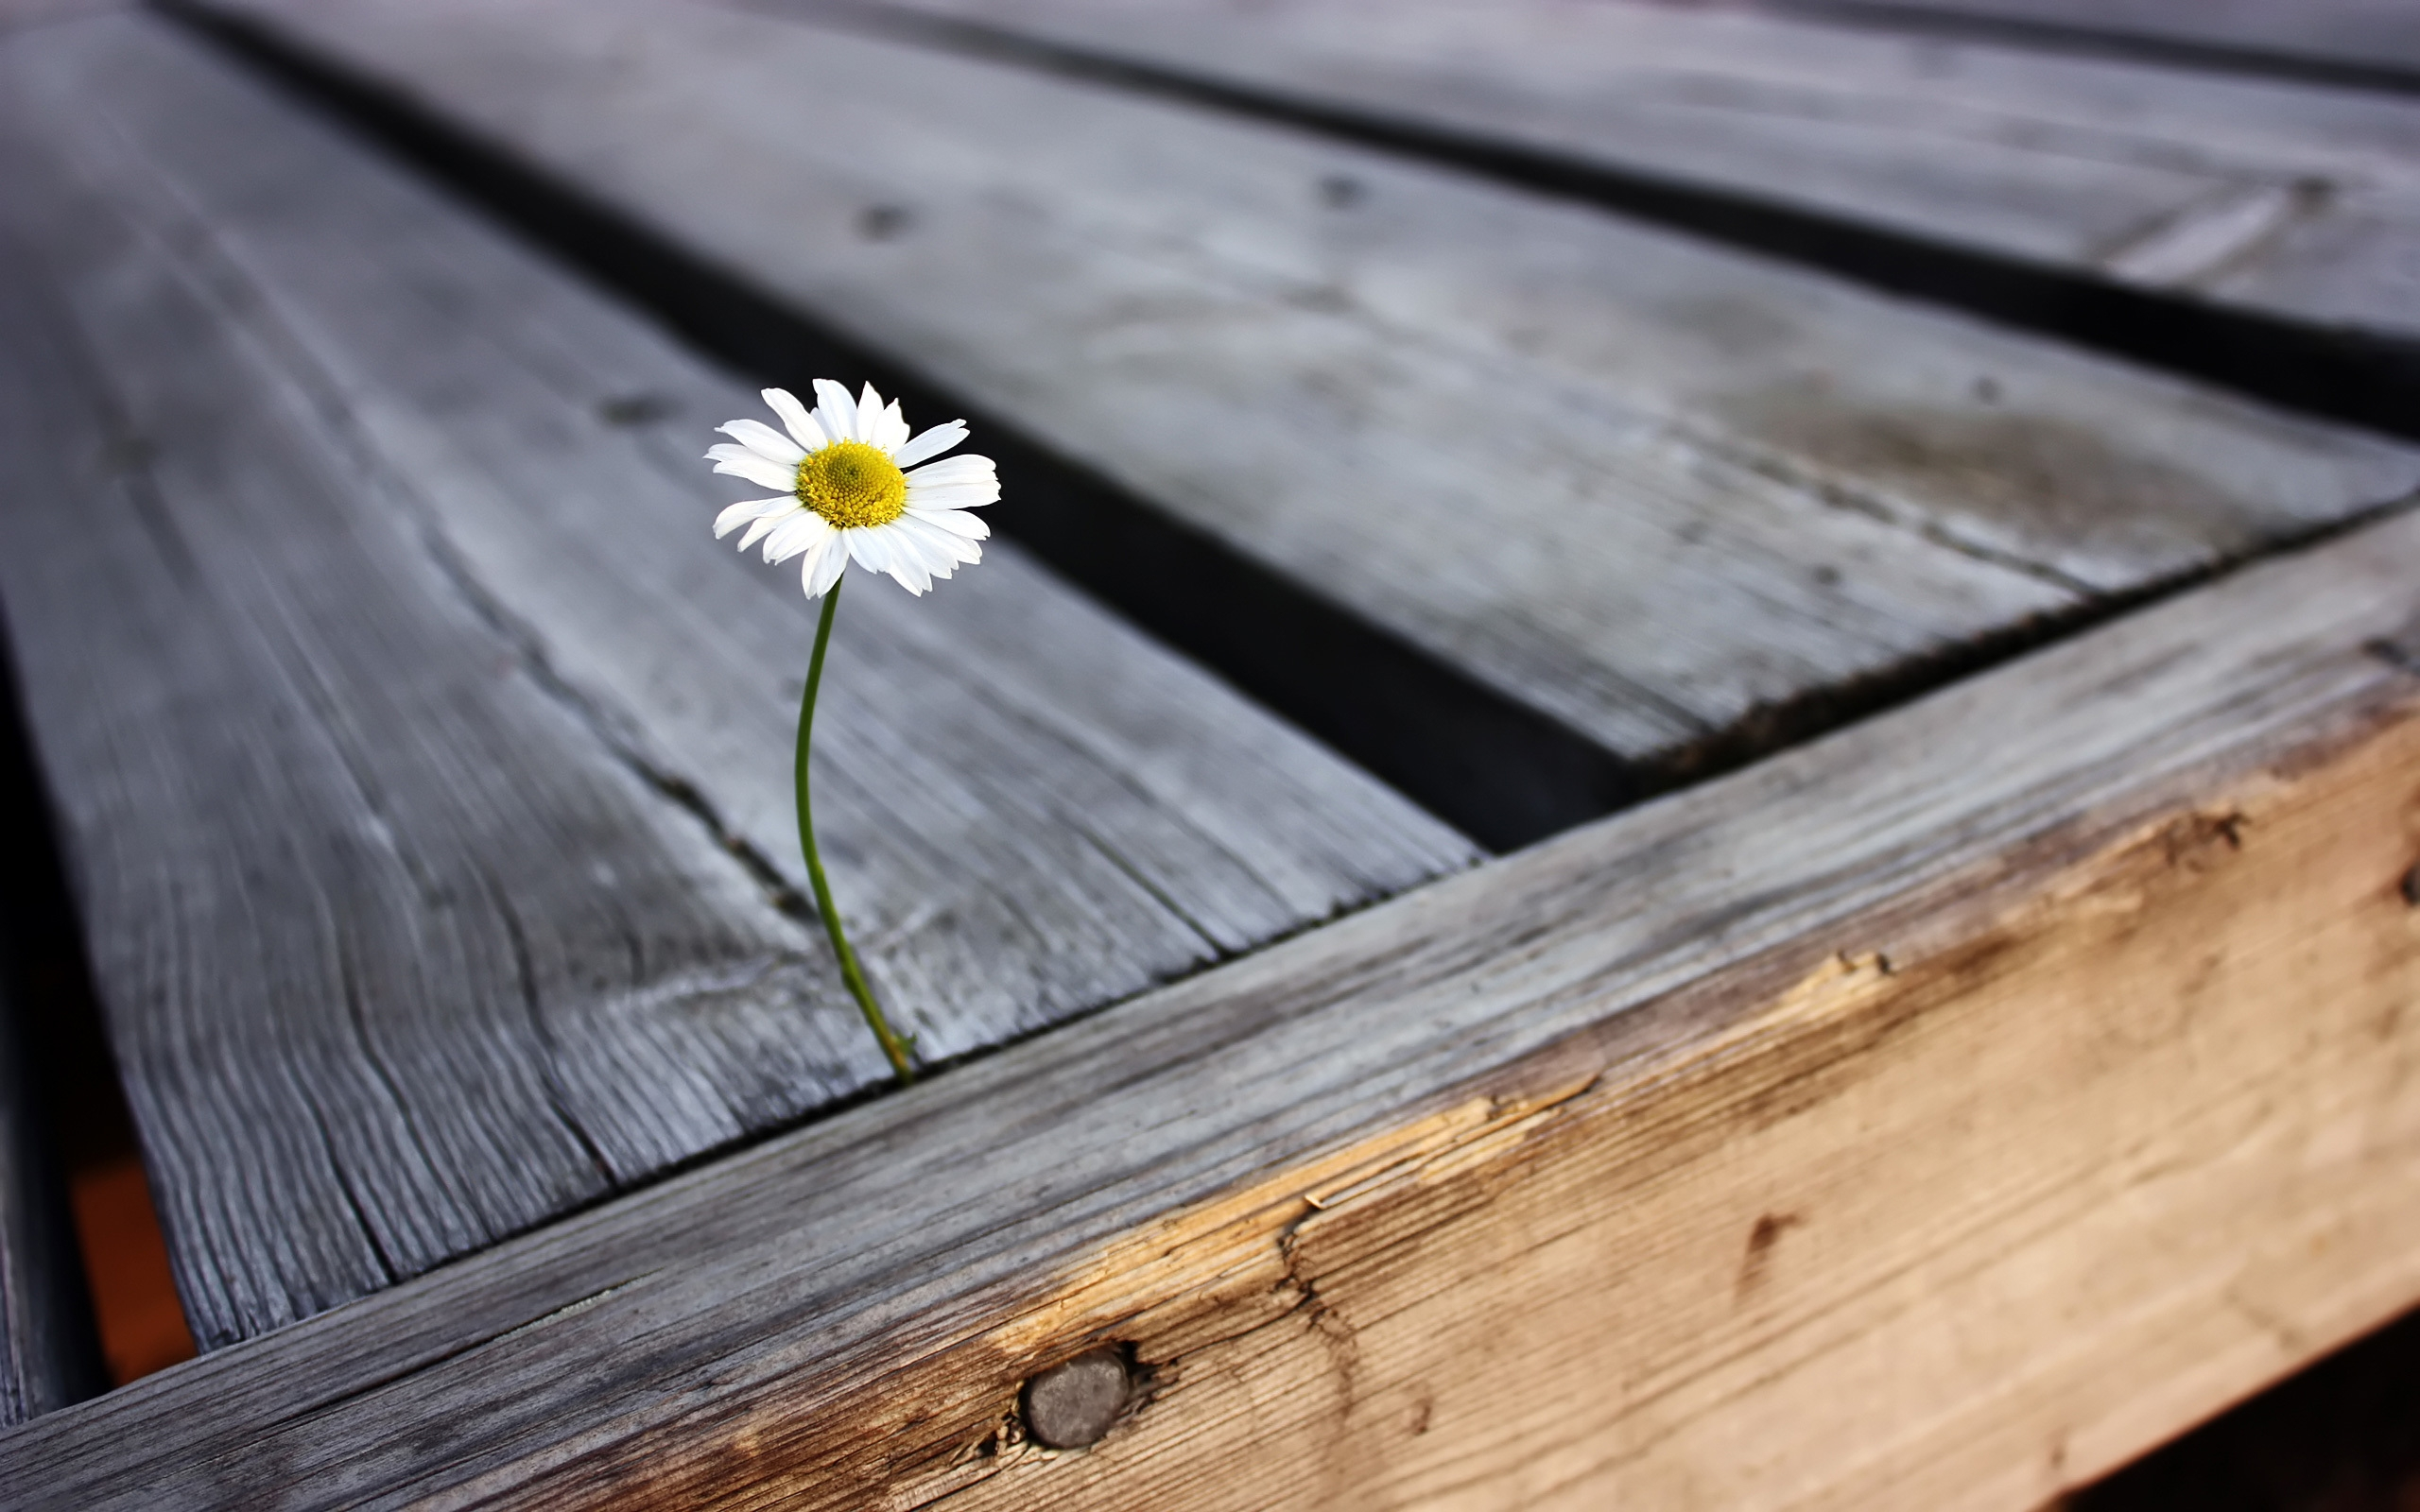 36141 download wallpaper Plants, Flowers, Camomile screensavers and pictures for free